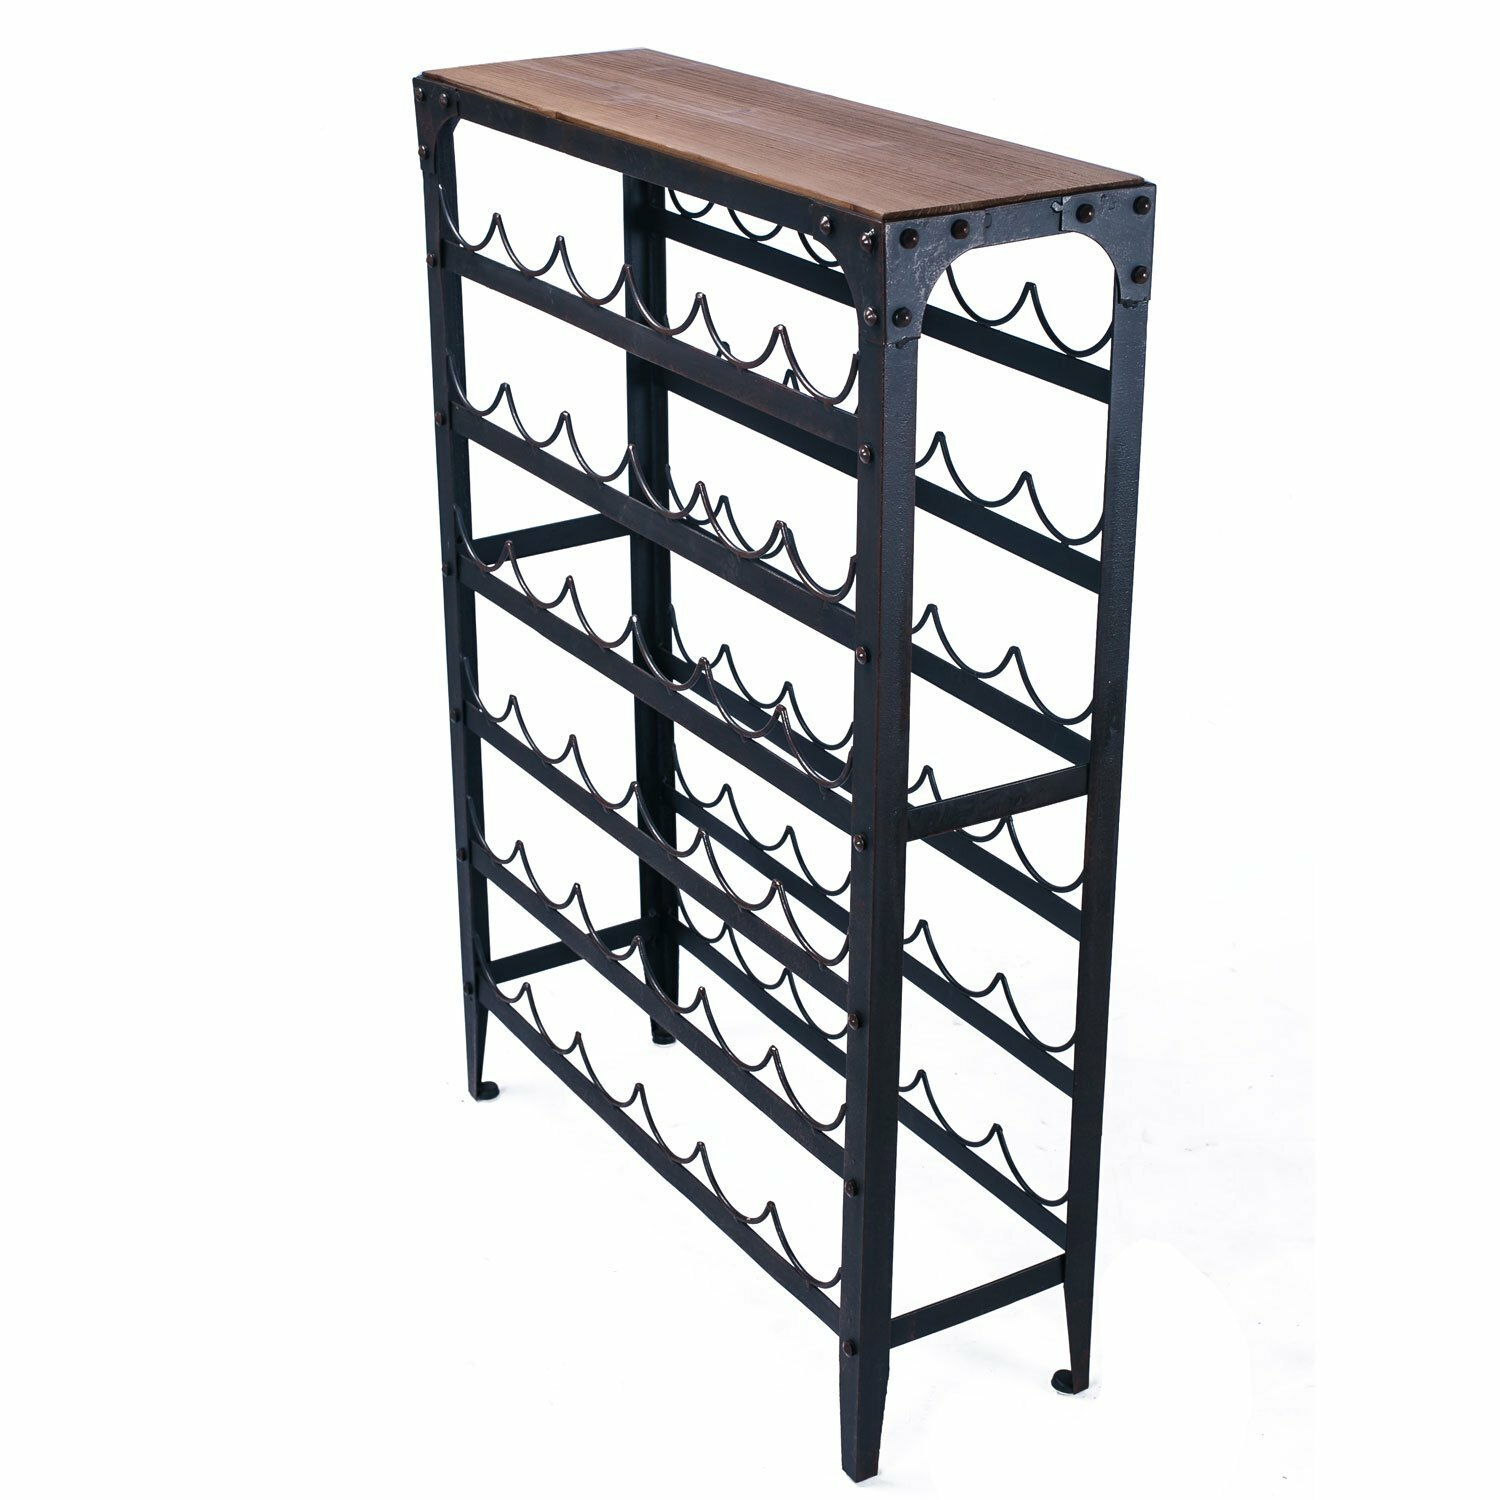 Adecotrading 36 bottle floor wine rack reviews wayfair for Floor wine rack